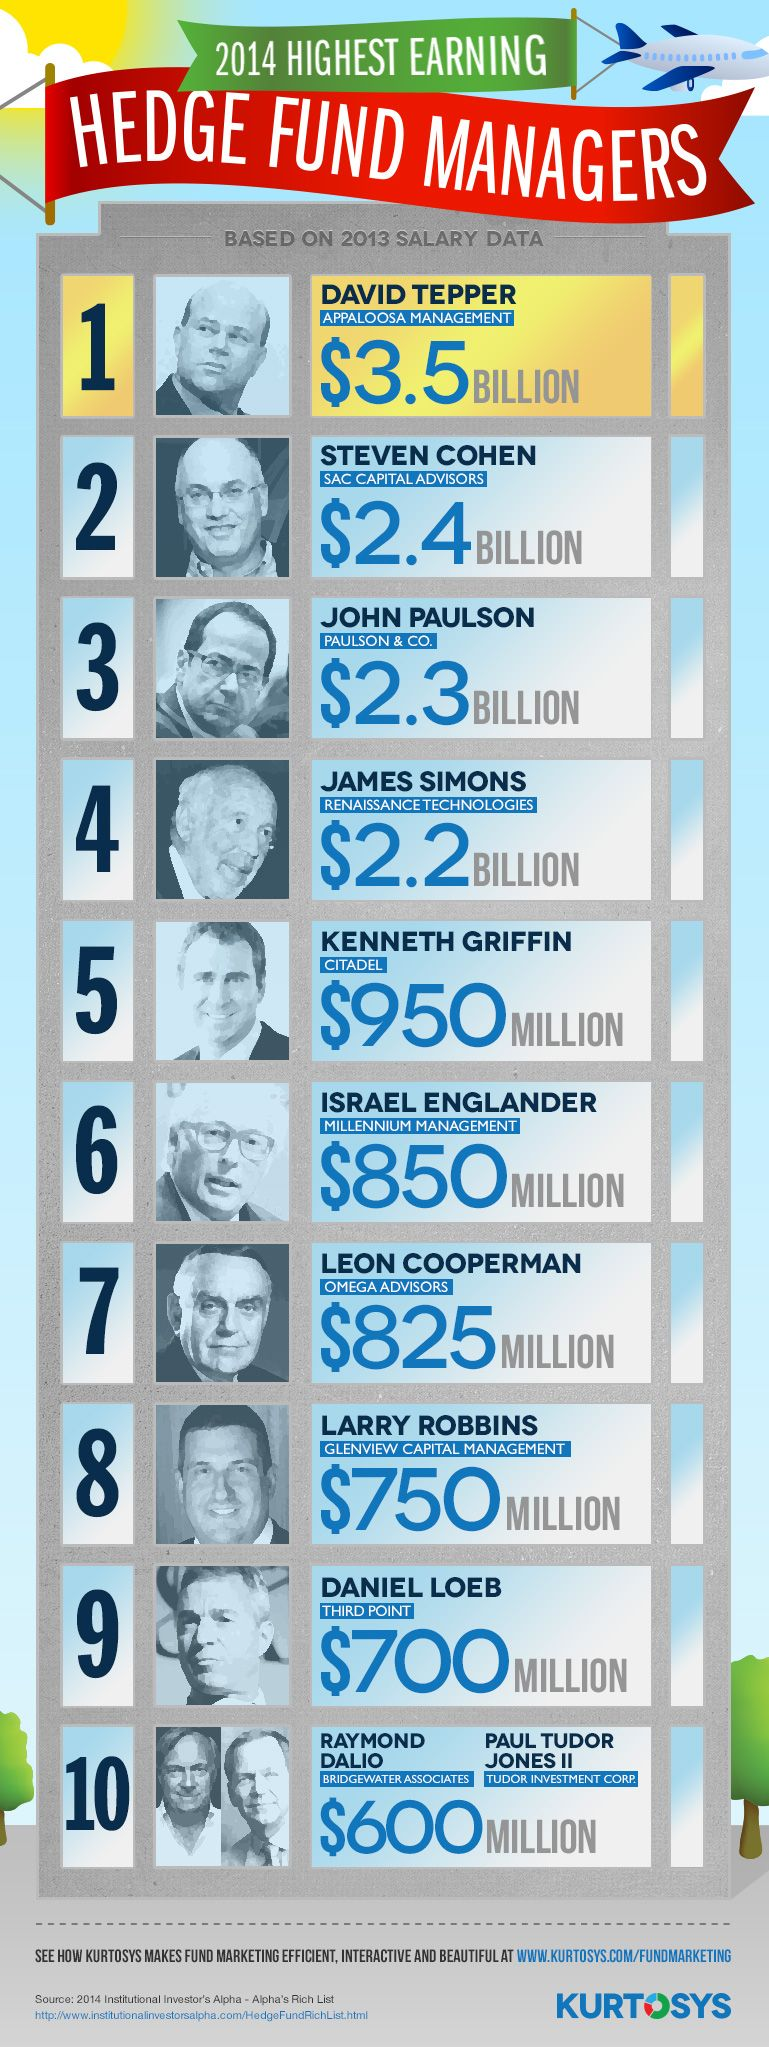 Top 10 Highest Paid Hedge Fund Managers Based On Institutional